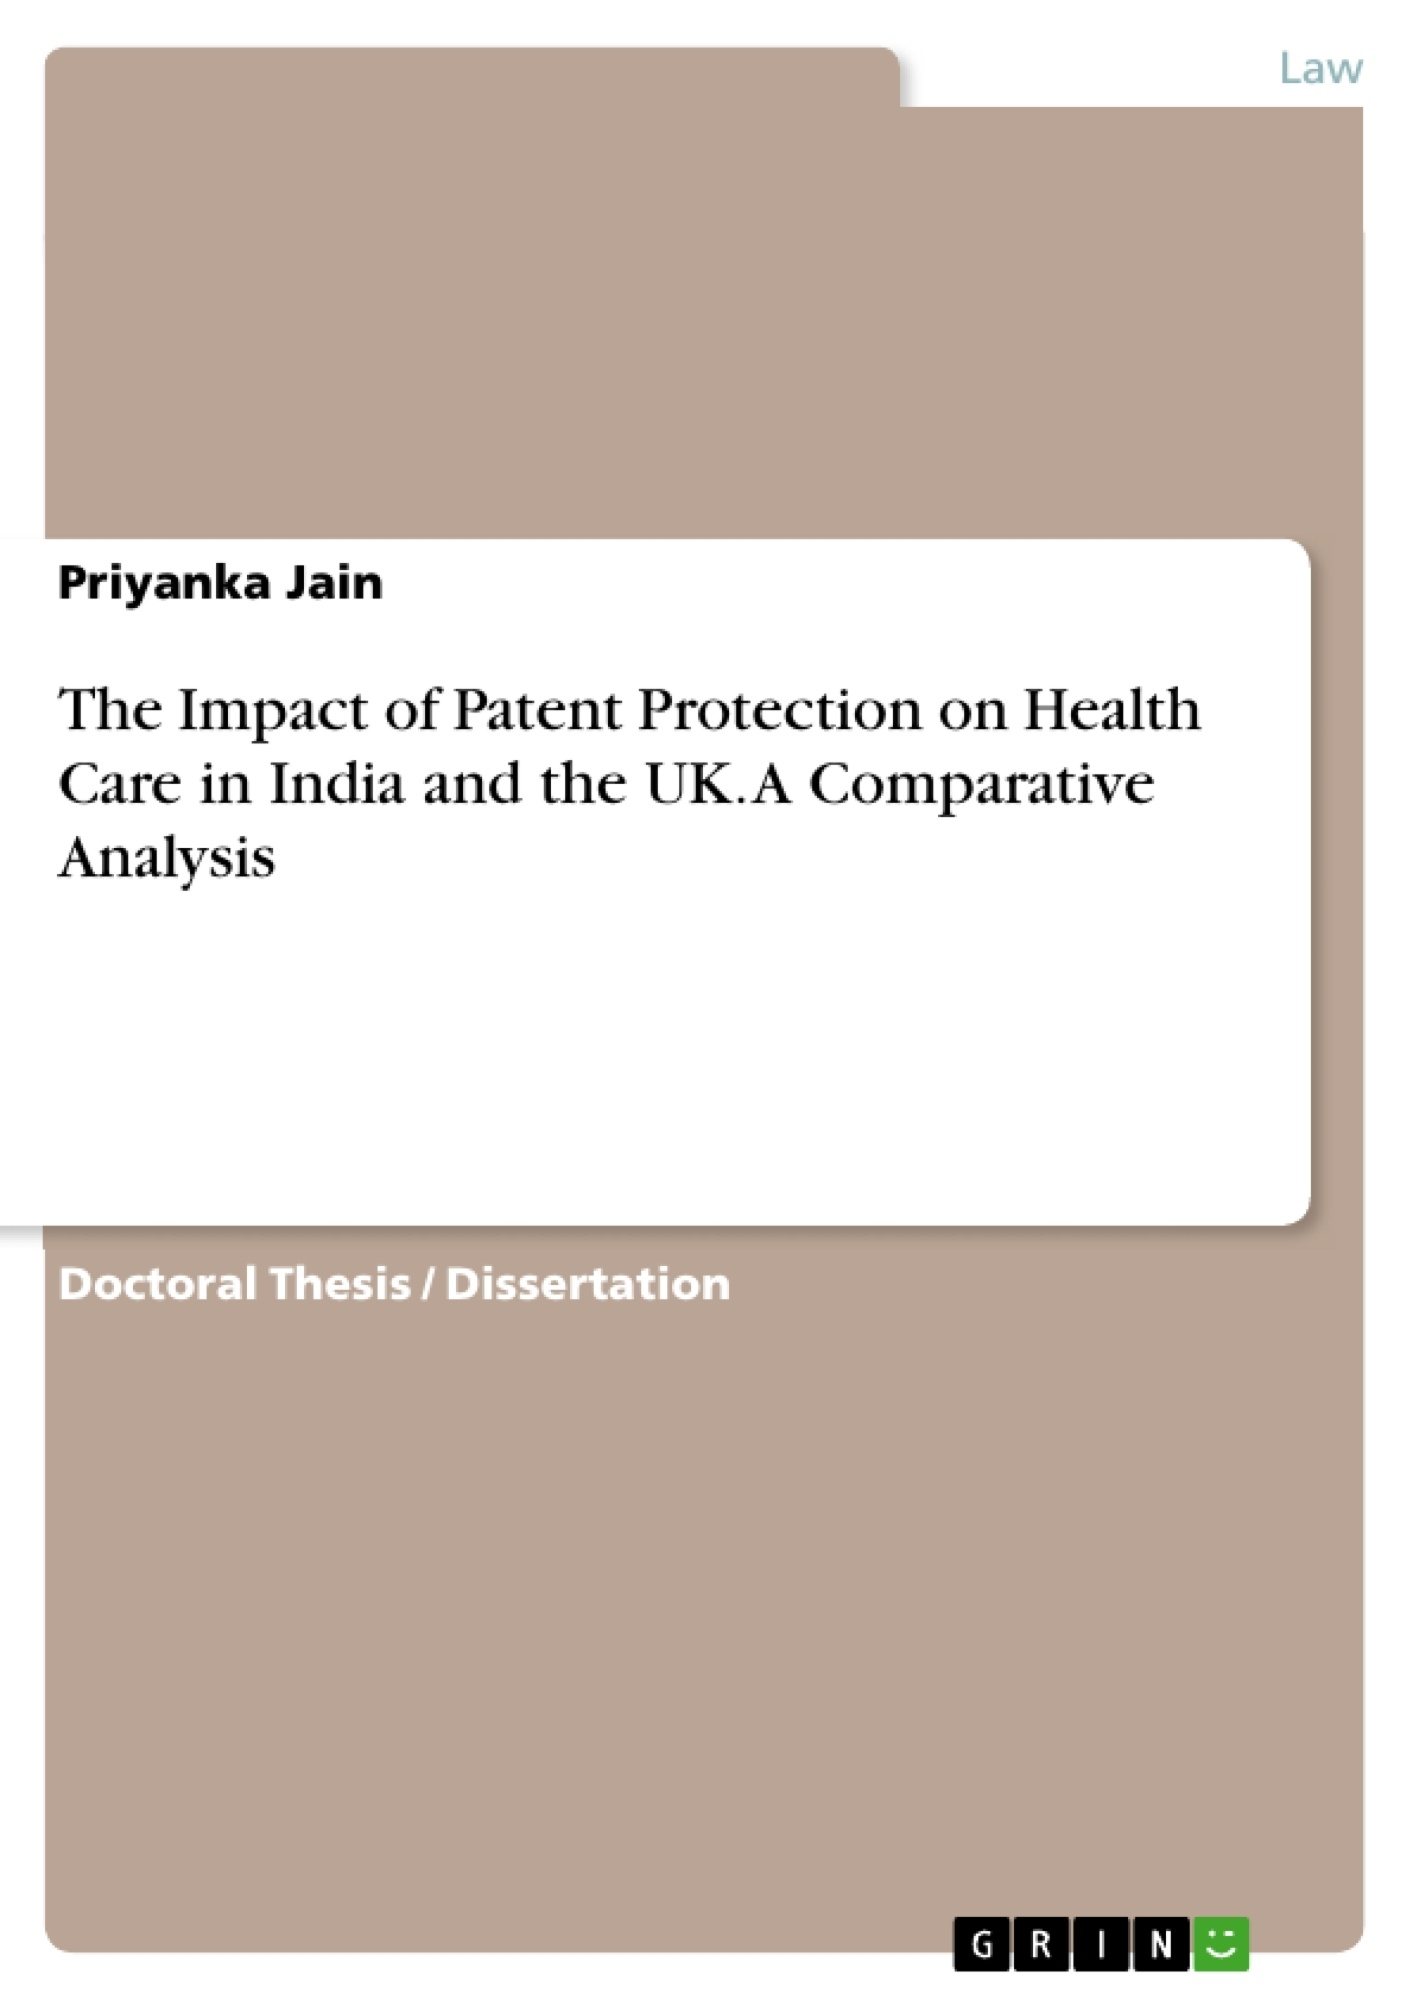 Title: The Impact of Patent Protection on Health Care in India and the UK. A Comparative Analysis